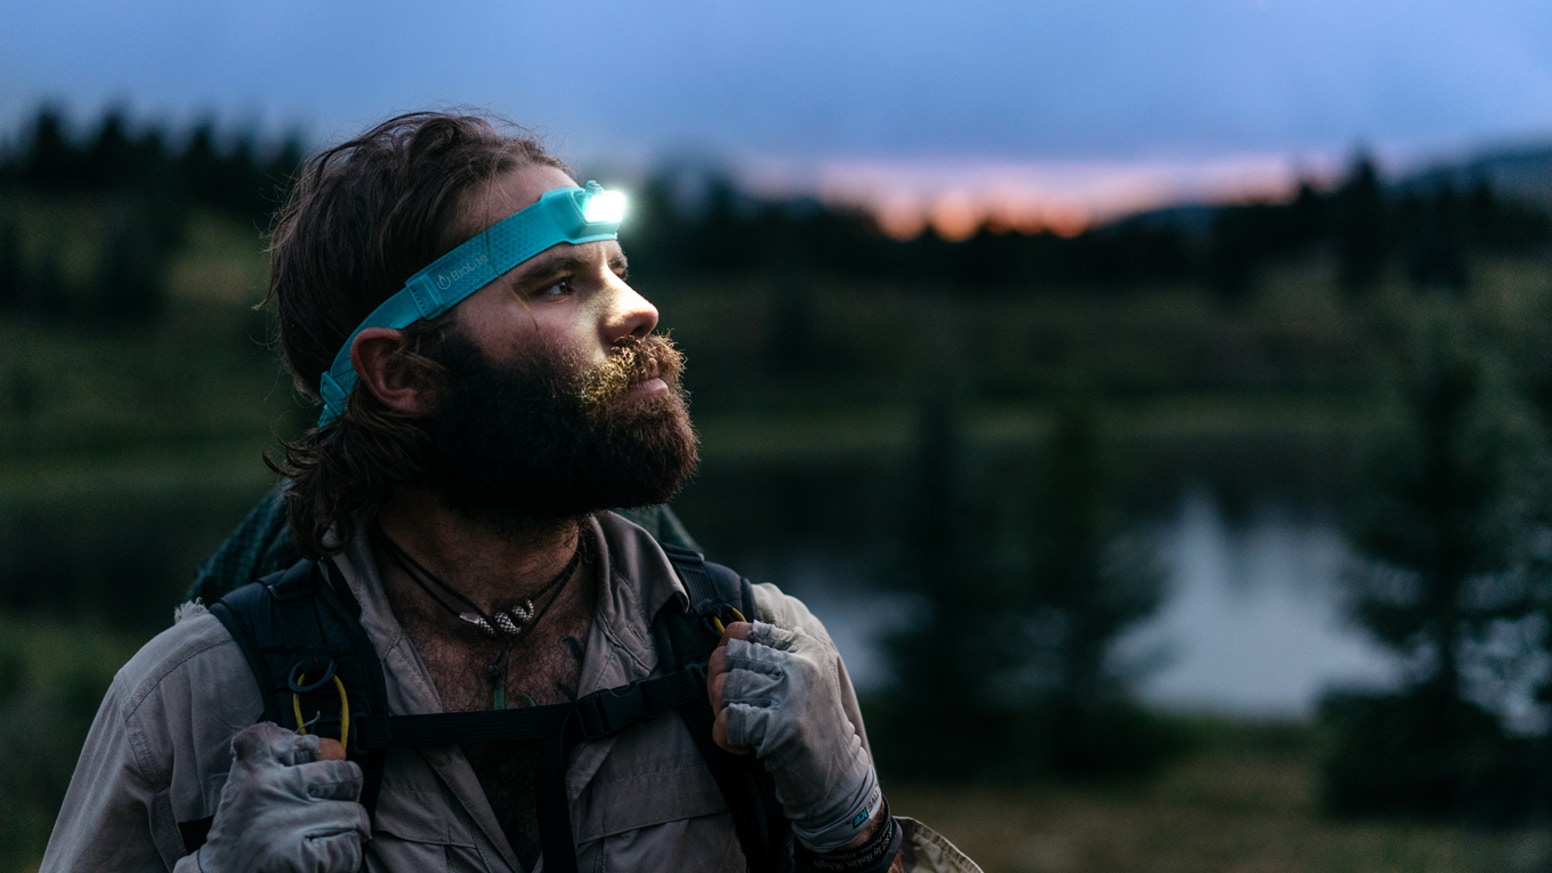 $527,514 - Product:BioLite HeadLamp(Wildly Capable, Simply Comfortable)プラットフォーム:kickstarter(主催者推薦)